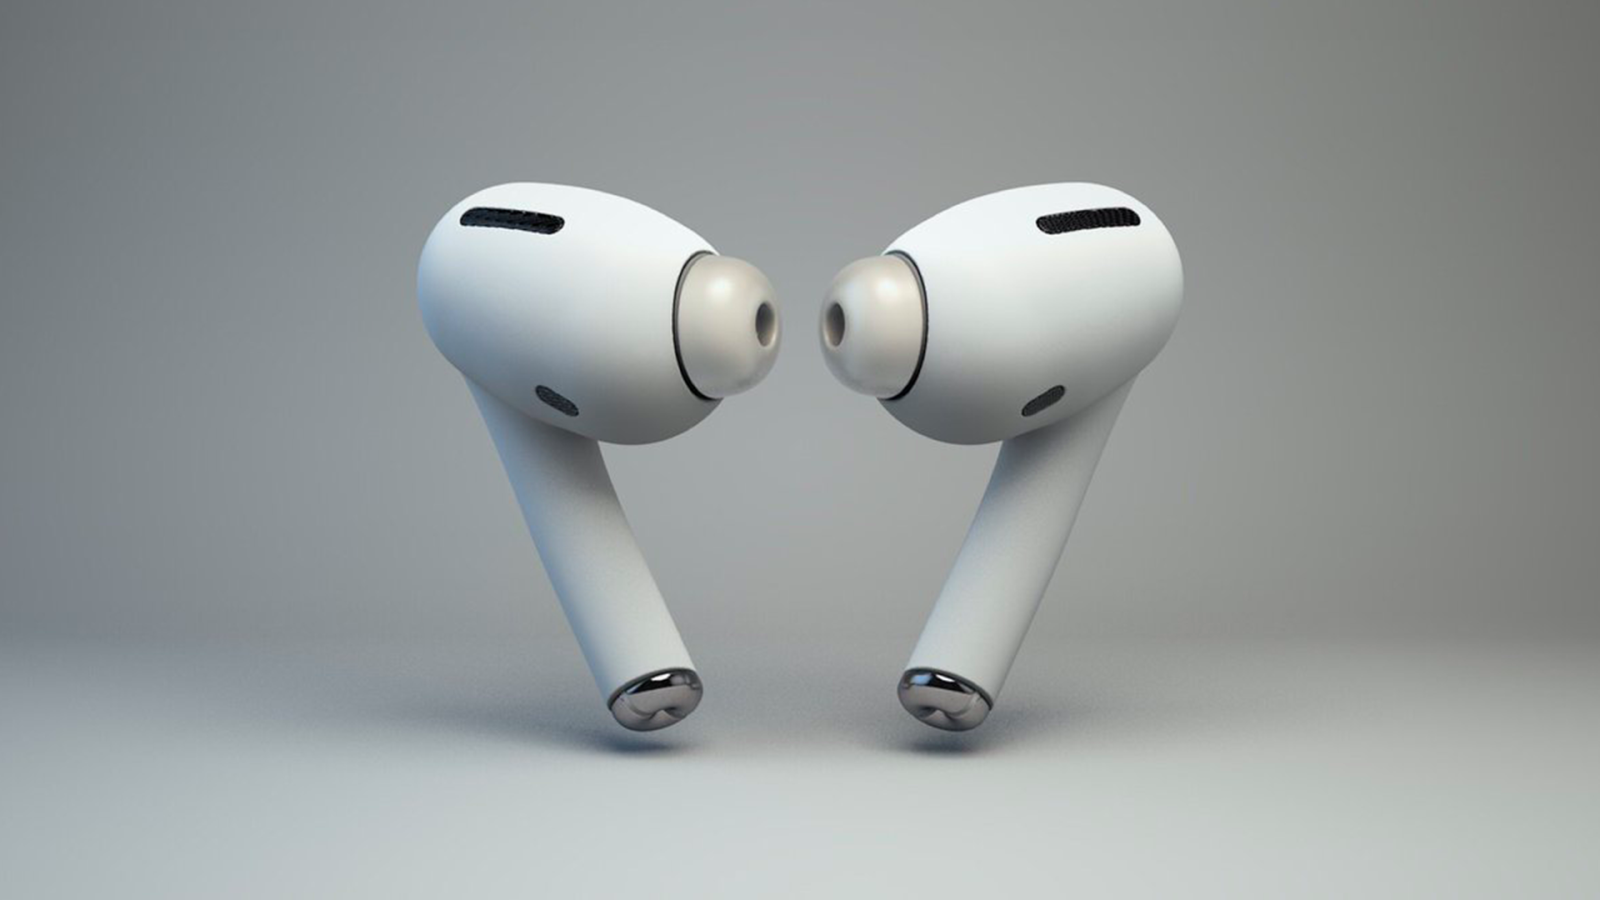 Airpods Pro Launch Expected In October Noise Cancellation Hefty